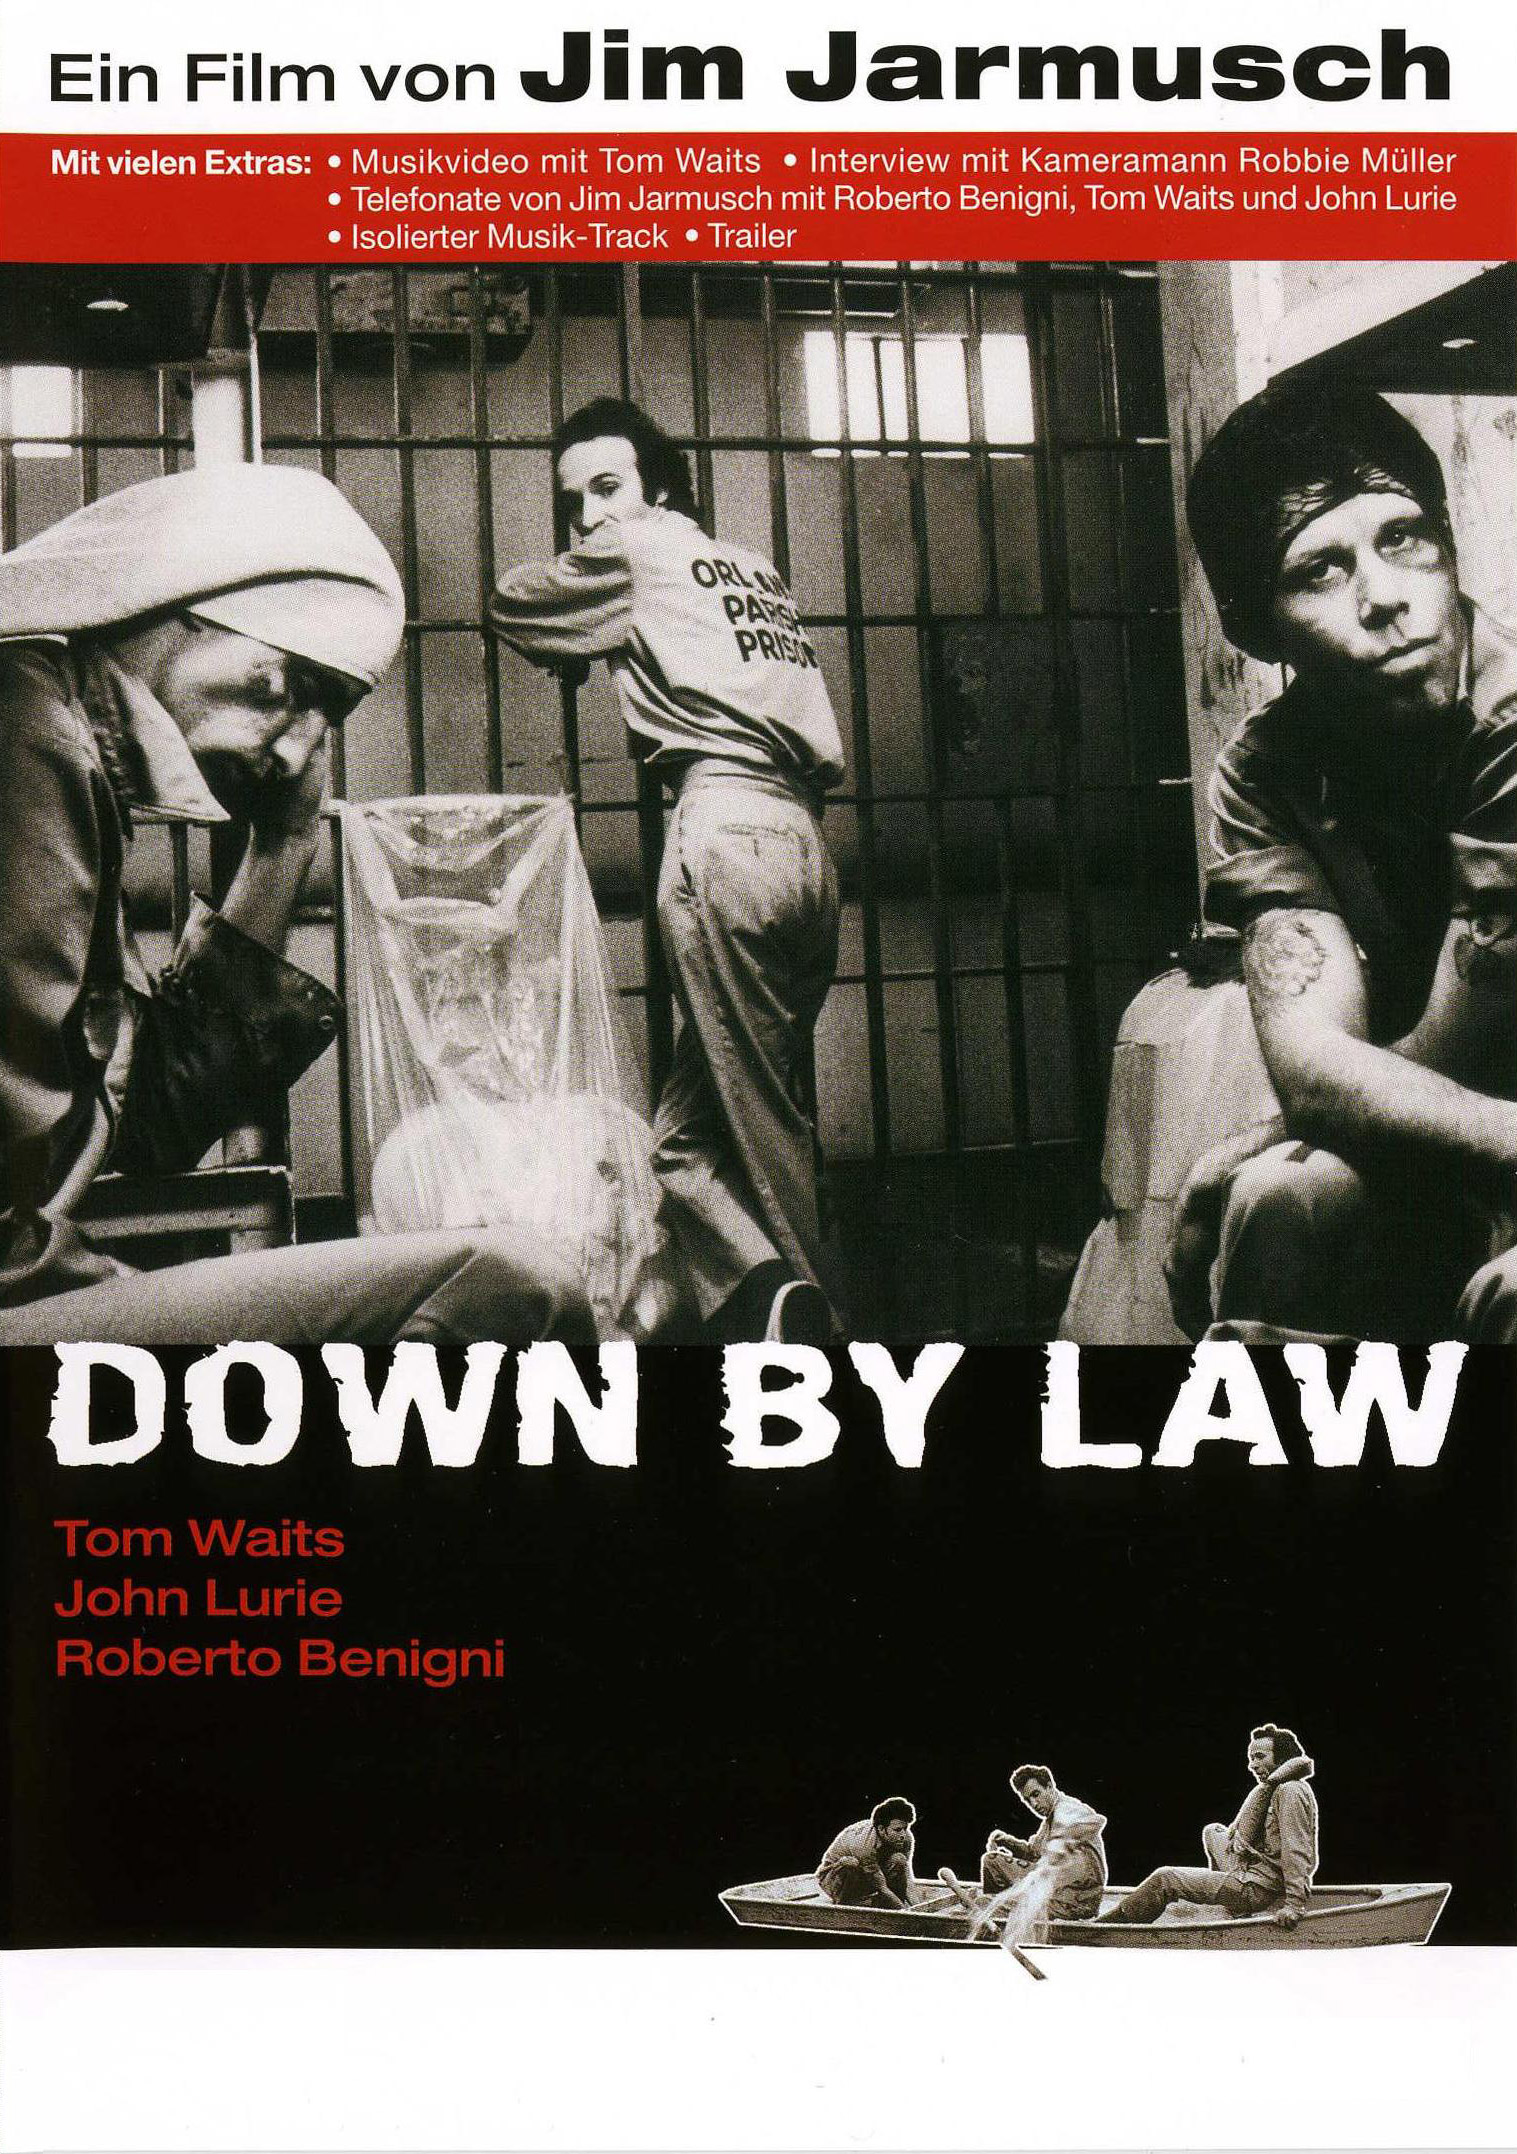 Down By Law - 1986 - Jim Jarmusch